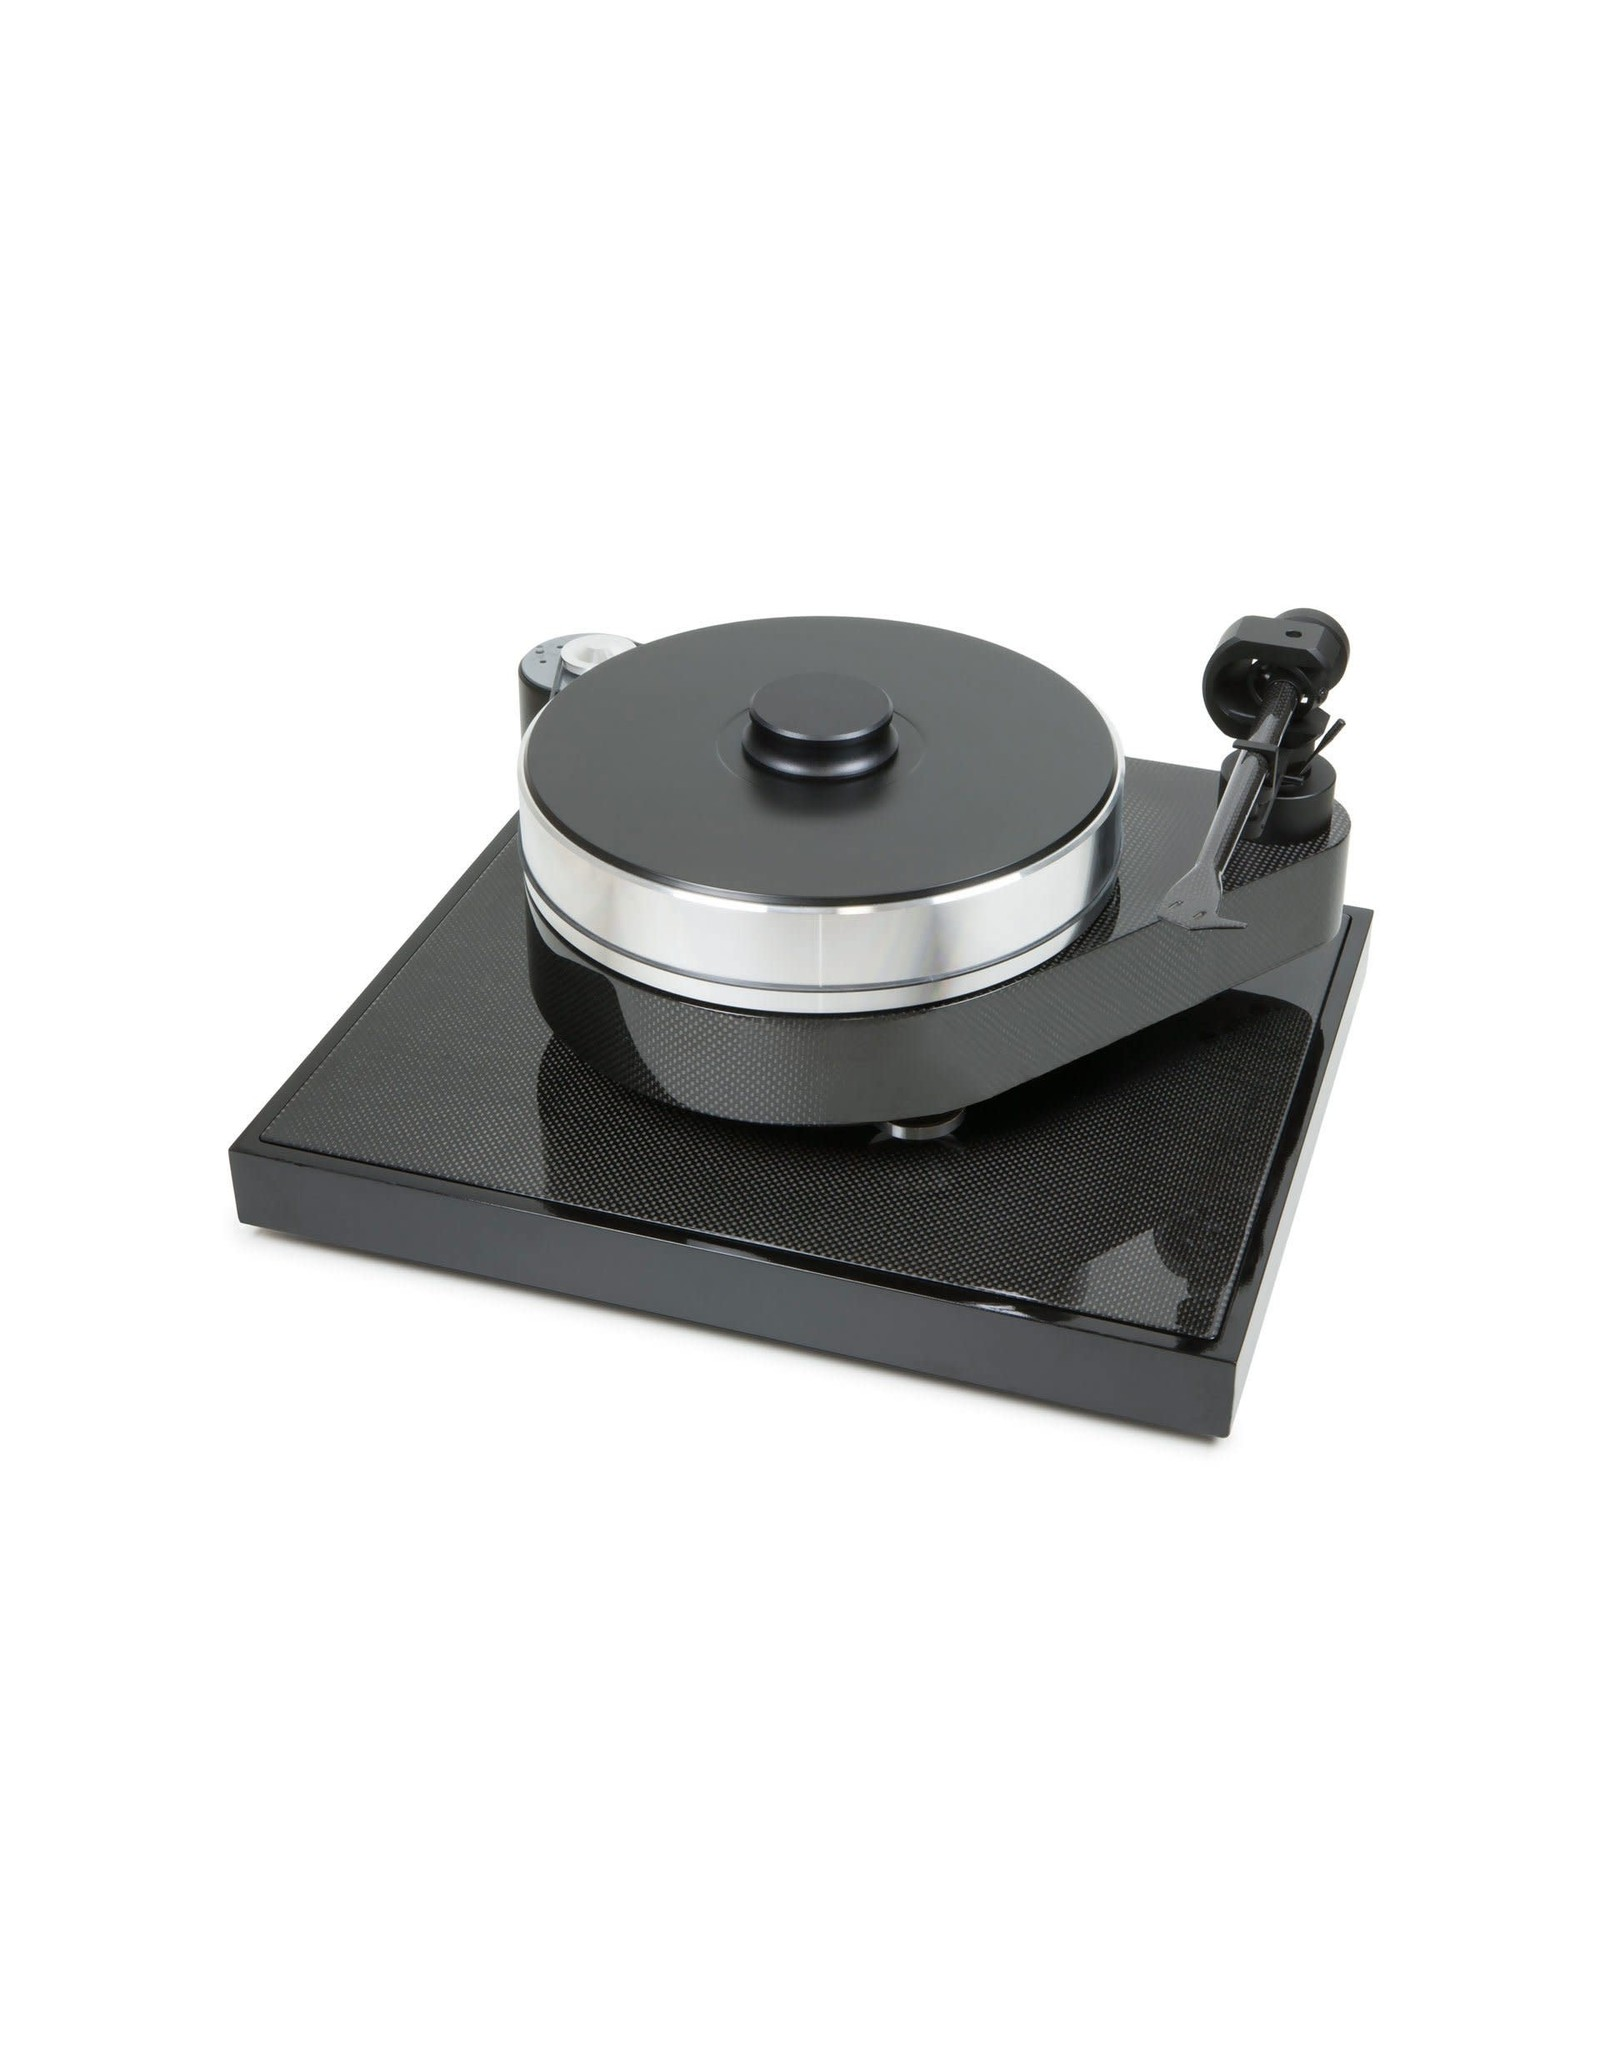 Pro-Ject Pro-Ject RPM 10 Carbon Turntable